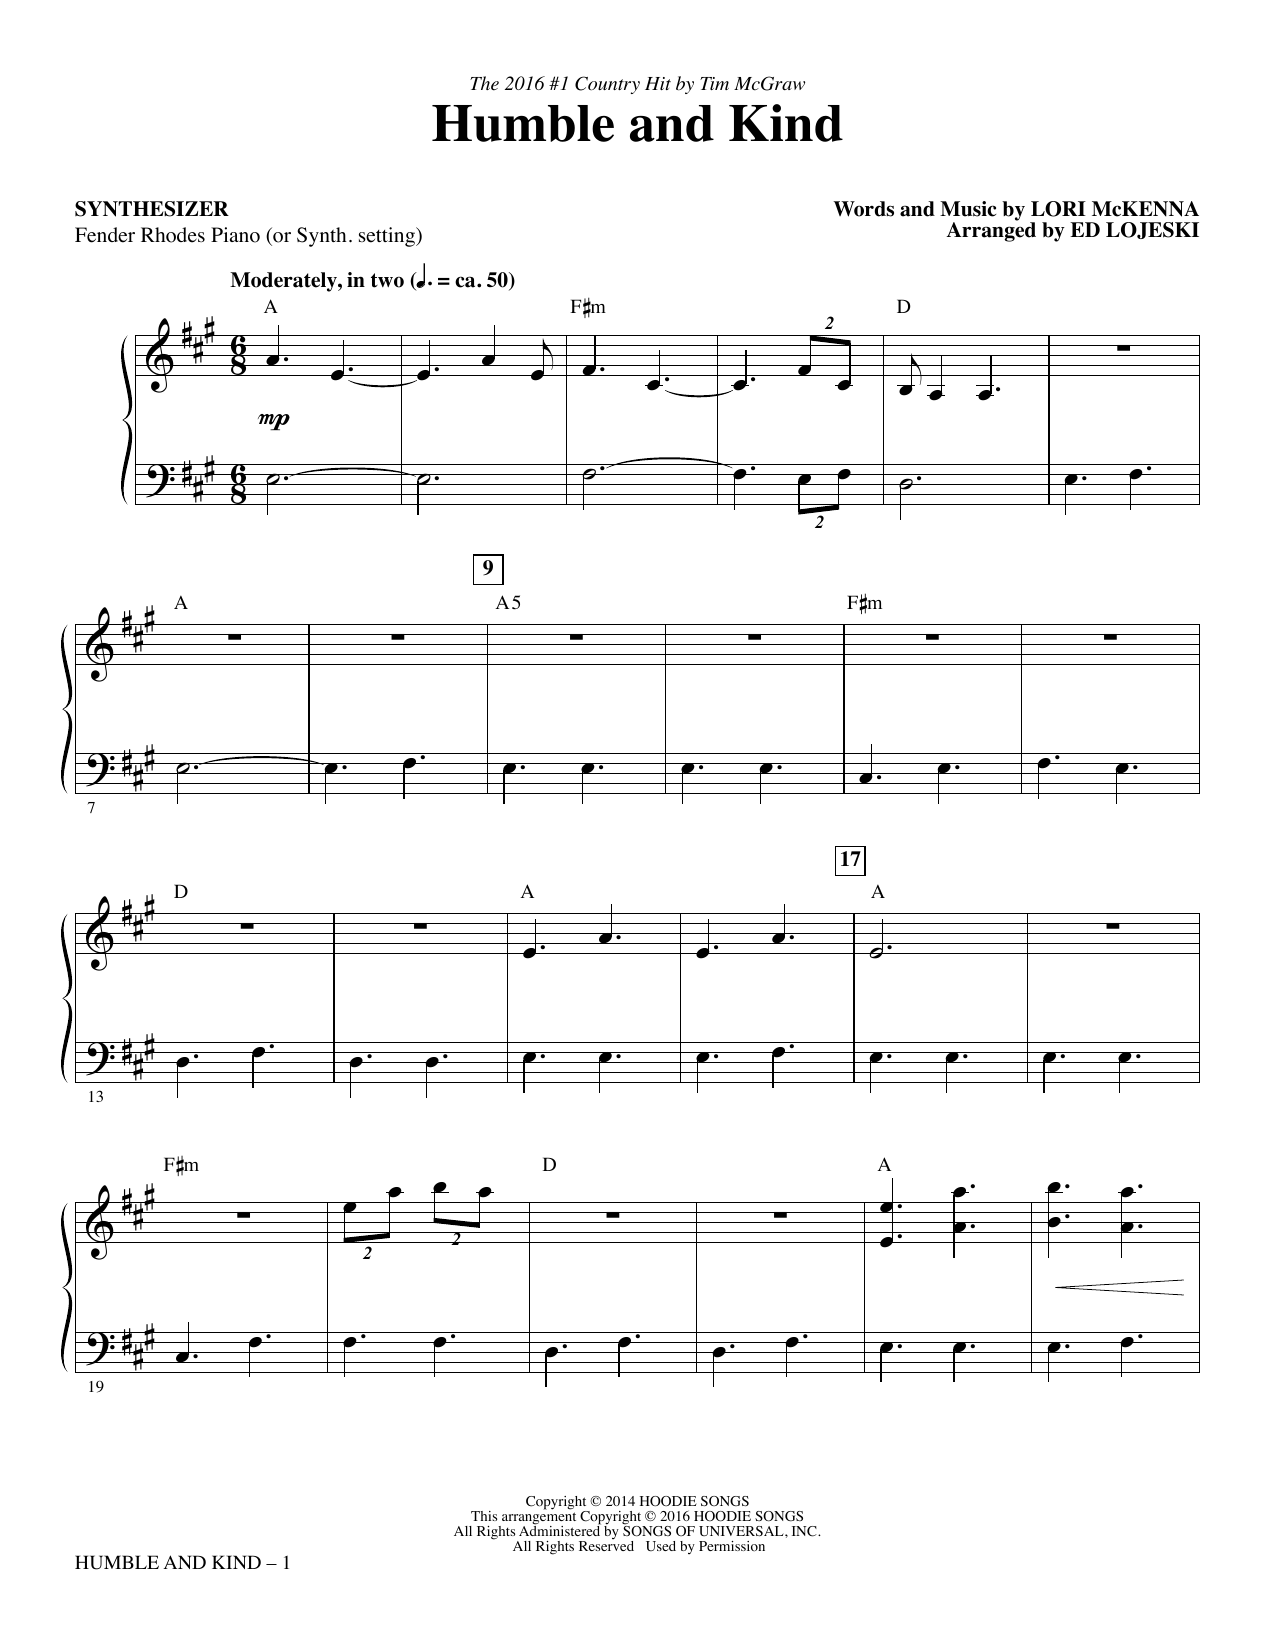 Humble and Kind (complete set of parts) sheet music for orchestra/band by Lori McKenna, Ed Lojeski and Tim McGraw. Score Image Preview.